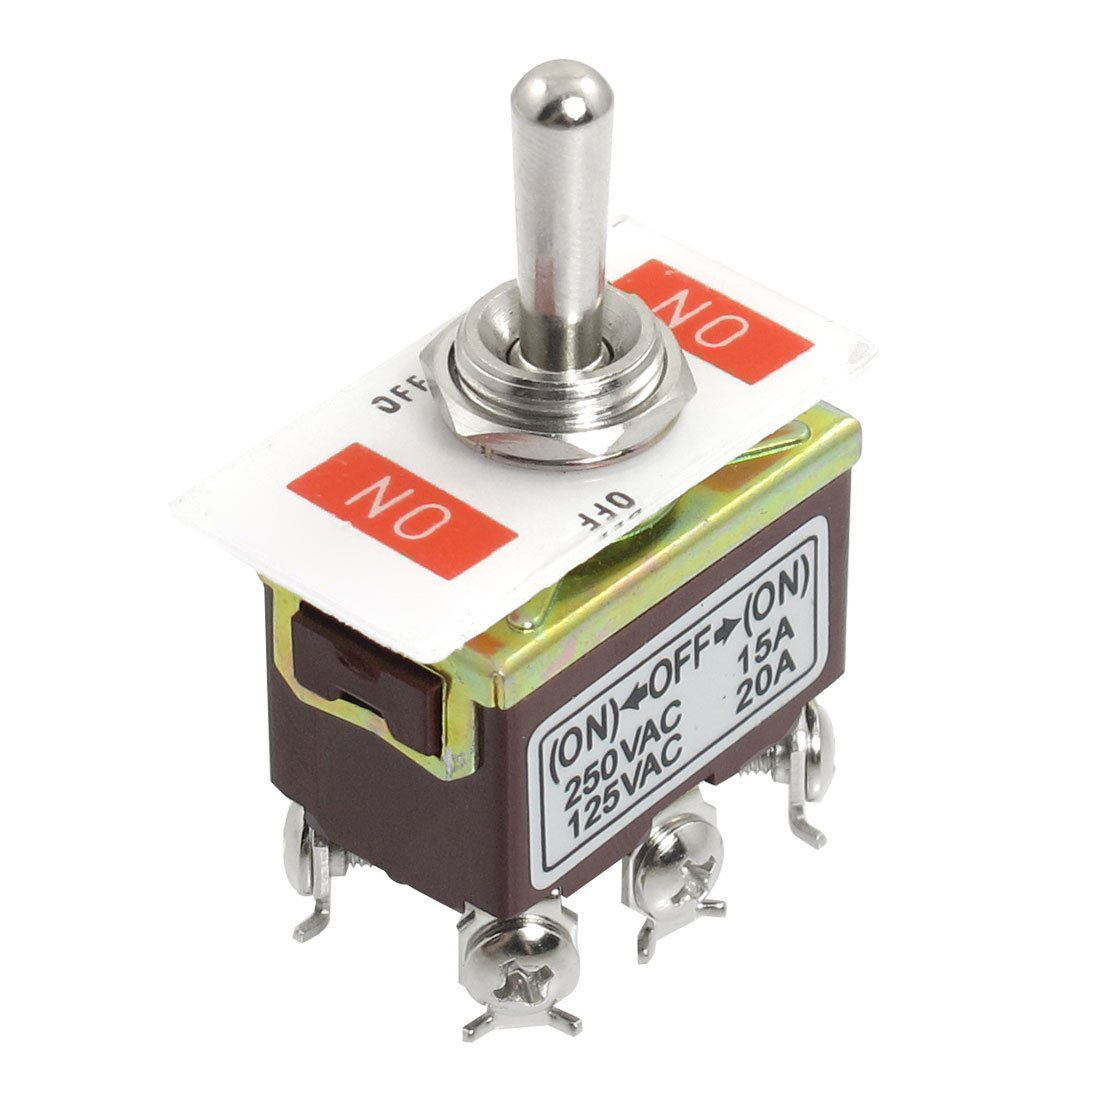 AC 250V/15A 125V/20A ON/OFF/ON 3 Position DPDT Momentary Toggle ...